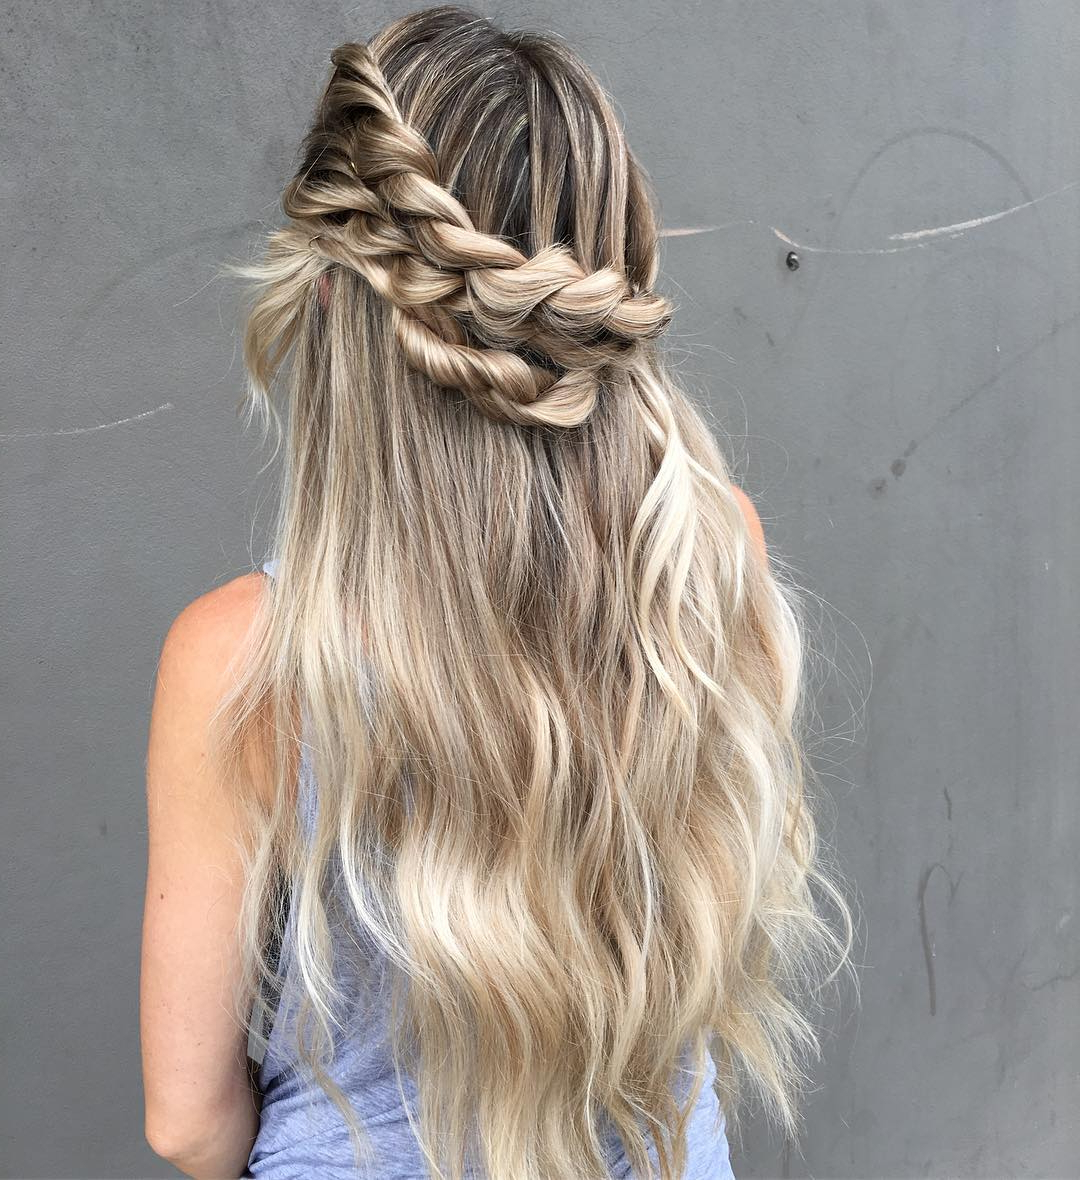 30 Rope Braid Hairstyles Looking Both Casual And Fancy Within 2019 Casual Rope Braid Hairstyles (Gallery 17 of 20)